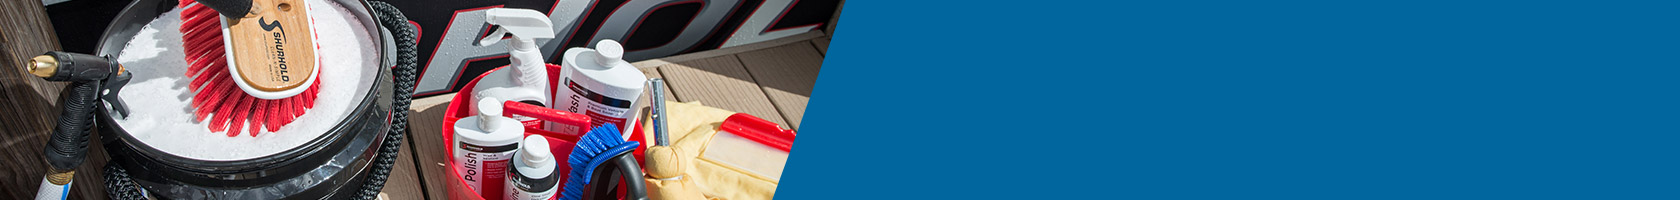 Shop & save up to 30% on boat maintenance & repair